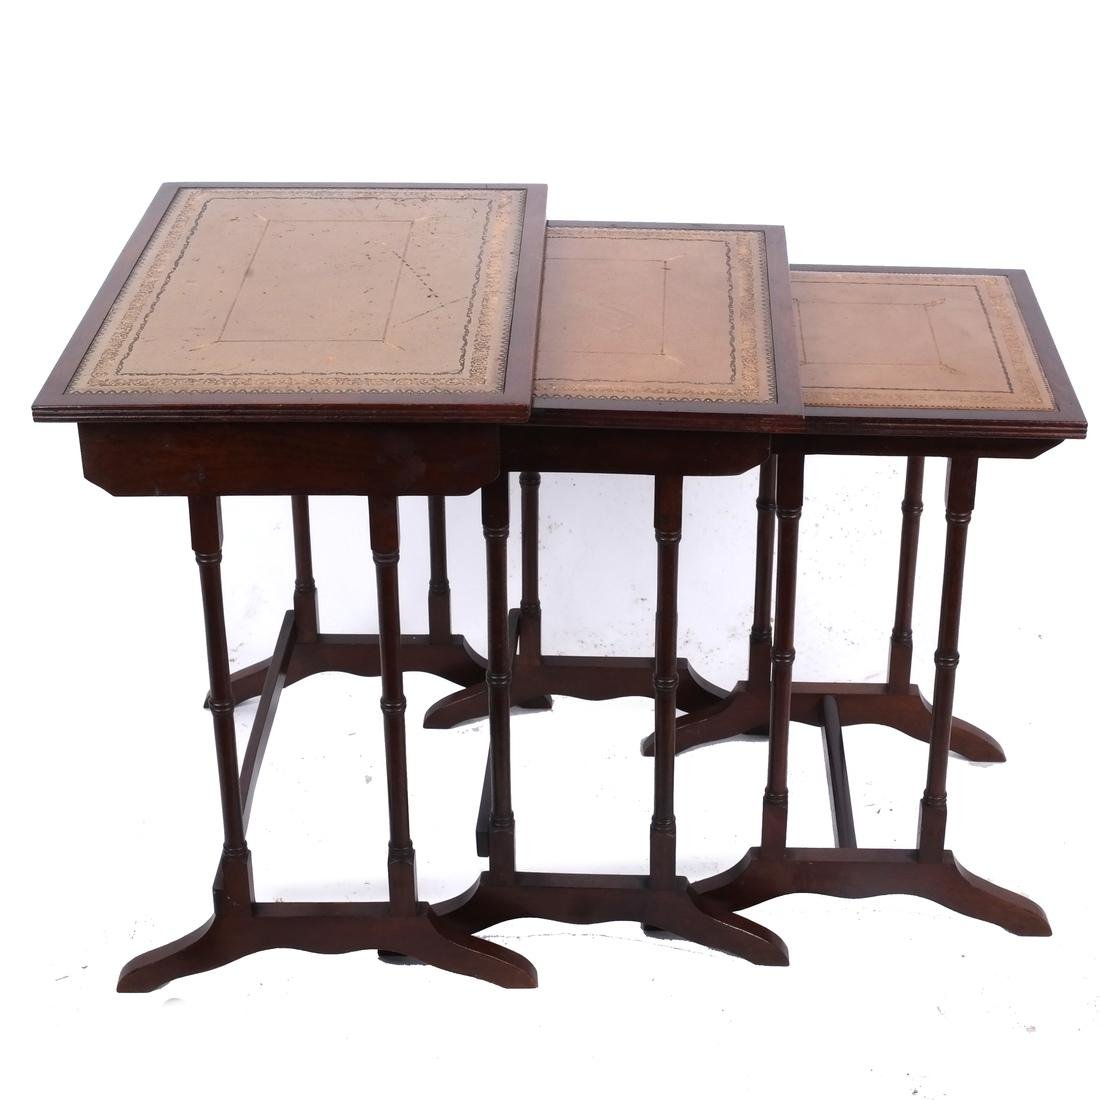 Mahogany Nest of Leather-Top Tables - 4